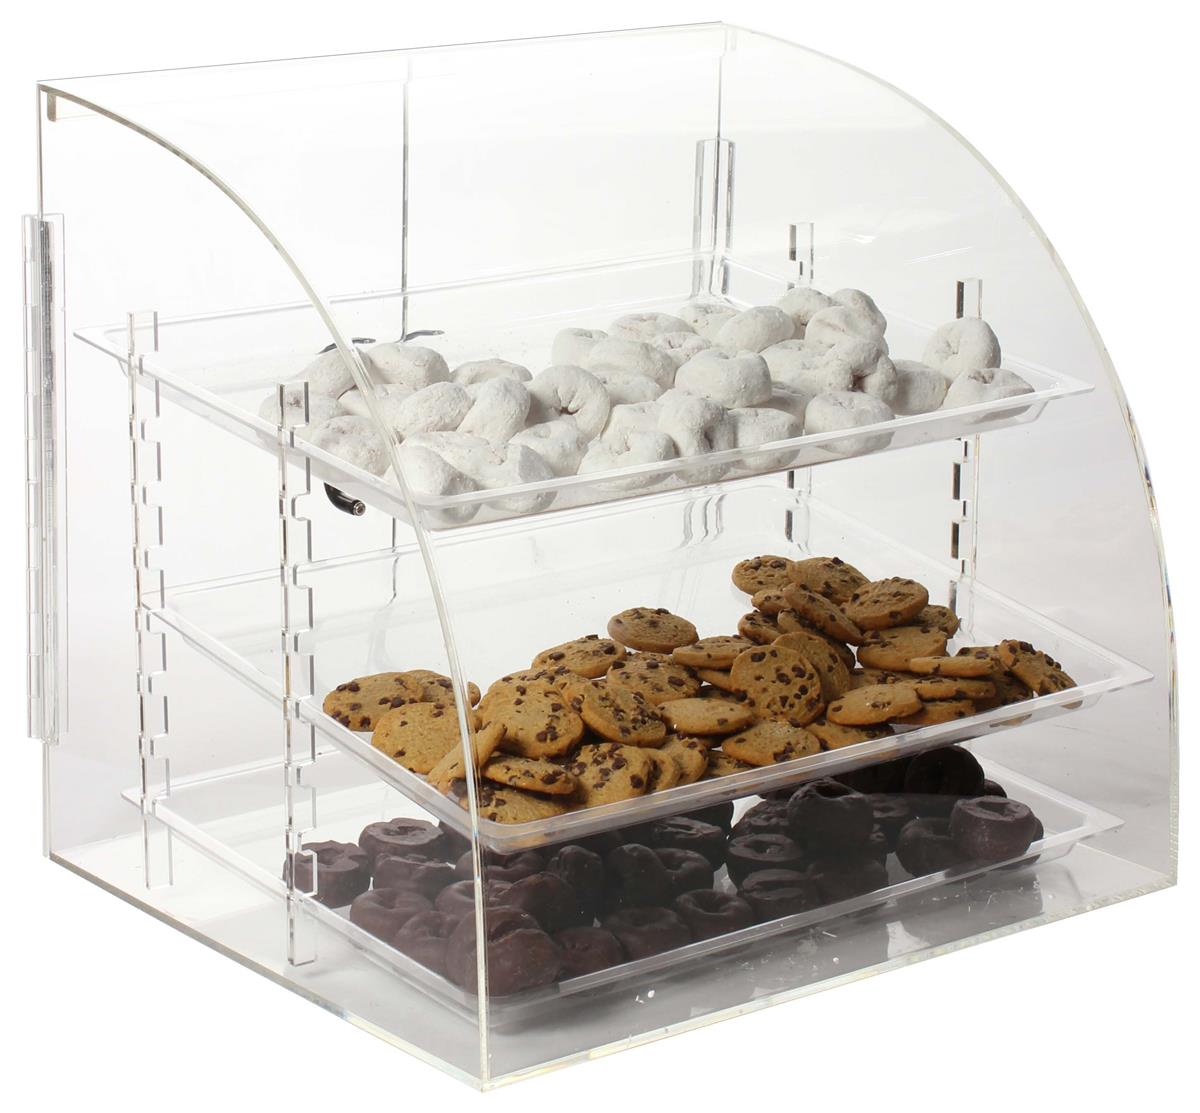 Countertop Bakery Case Rear Loading Bakery Counter Display Removable Plastic Trays